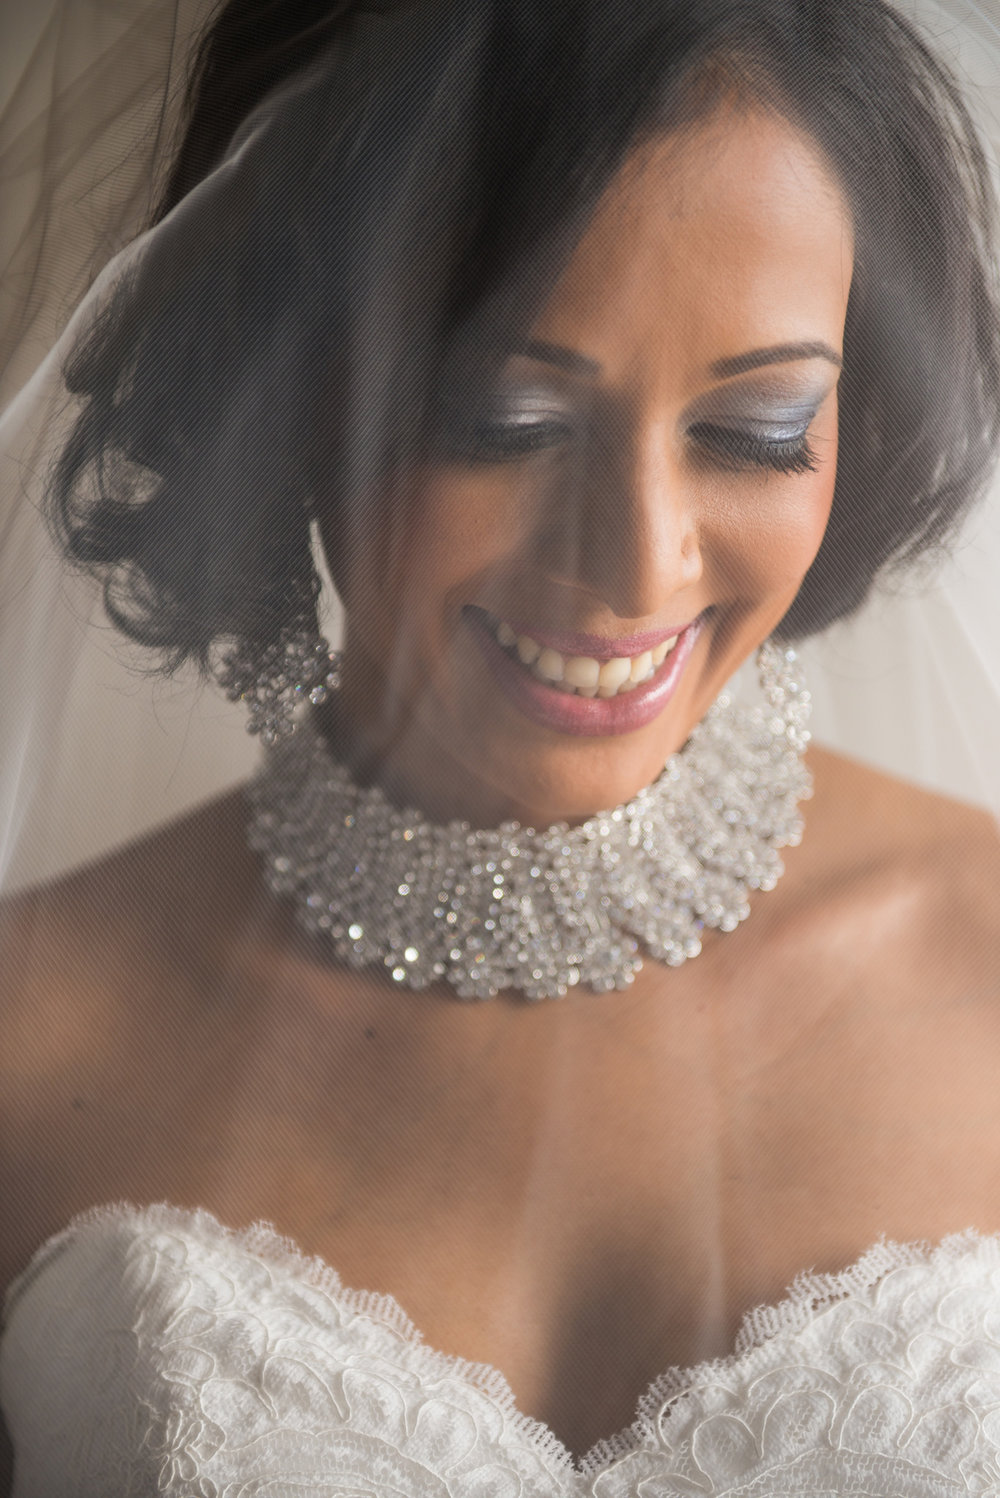 Toronto_Wedding_Photography_Alicia_Campbell_7.jpg